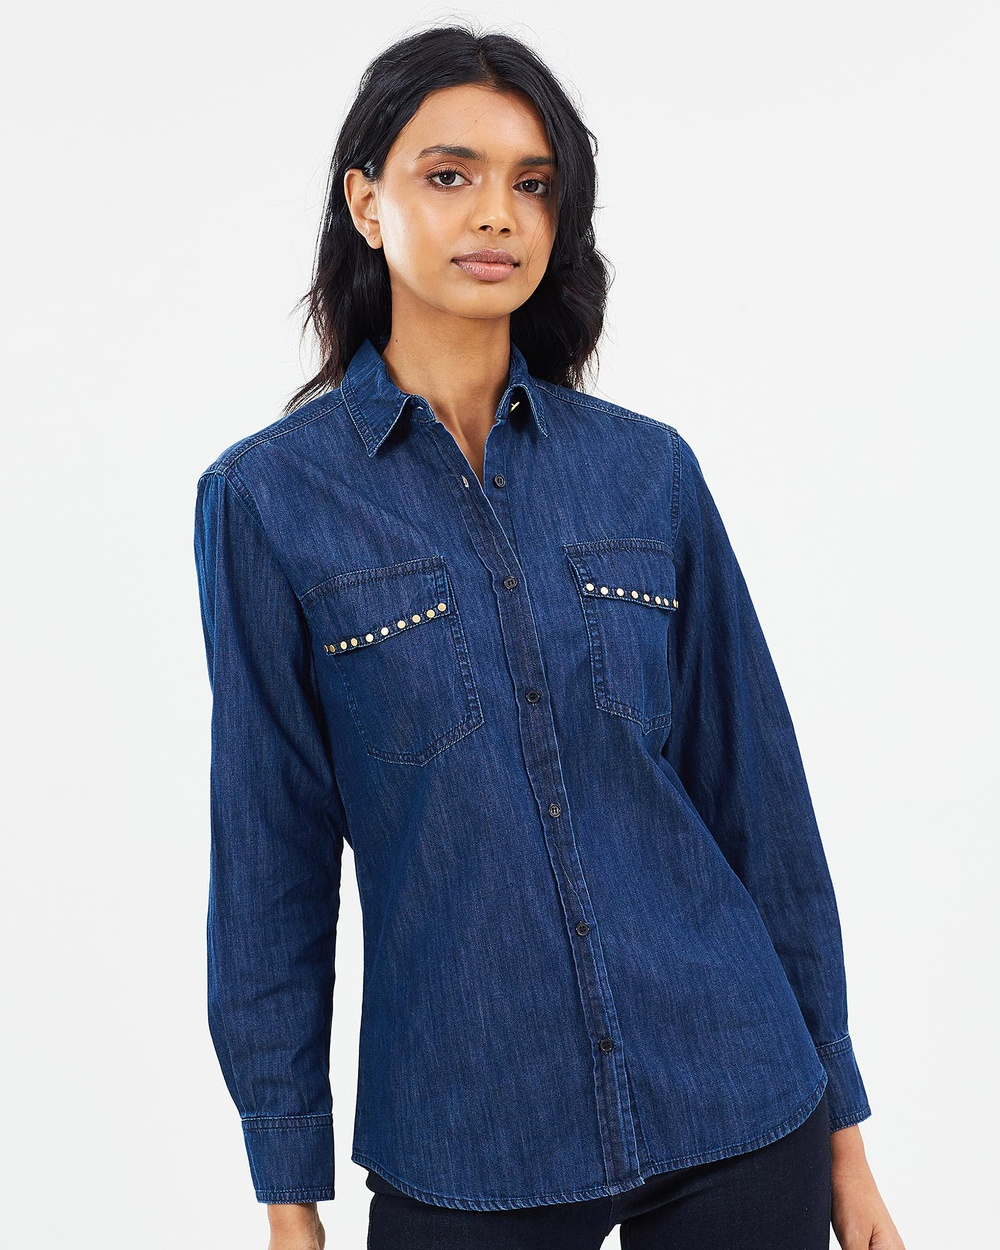 Elvie & Leo The Denim Shirt With Studs Tops Chambray The Denim Shirt With Studs